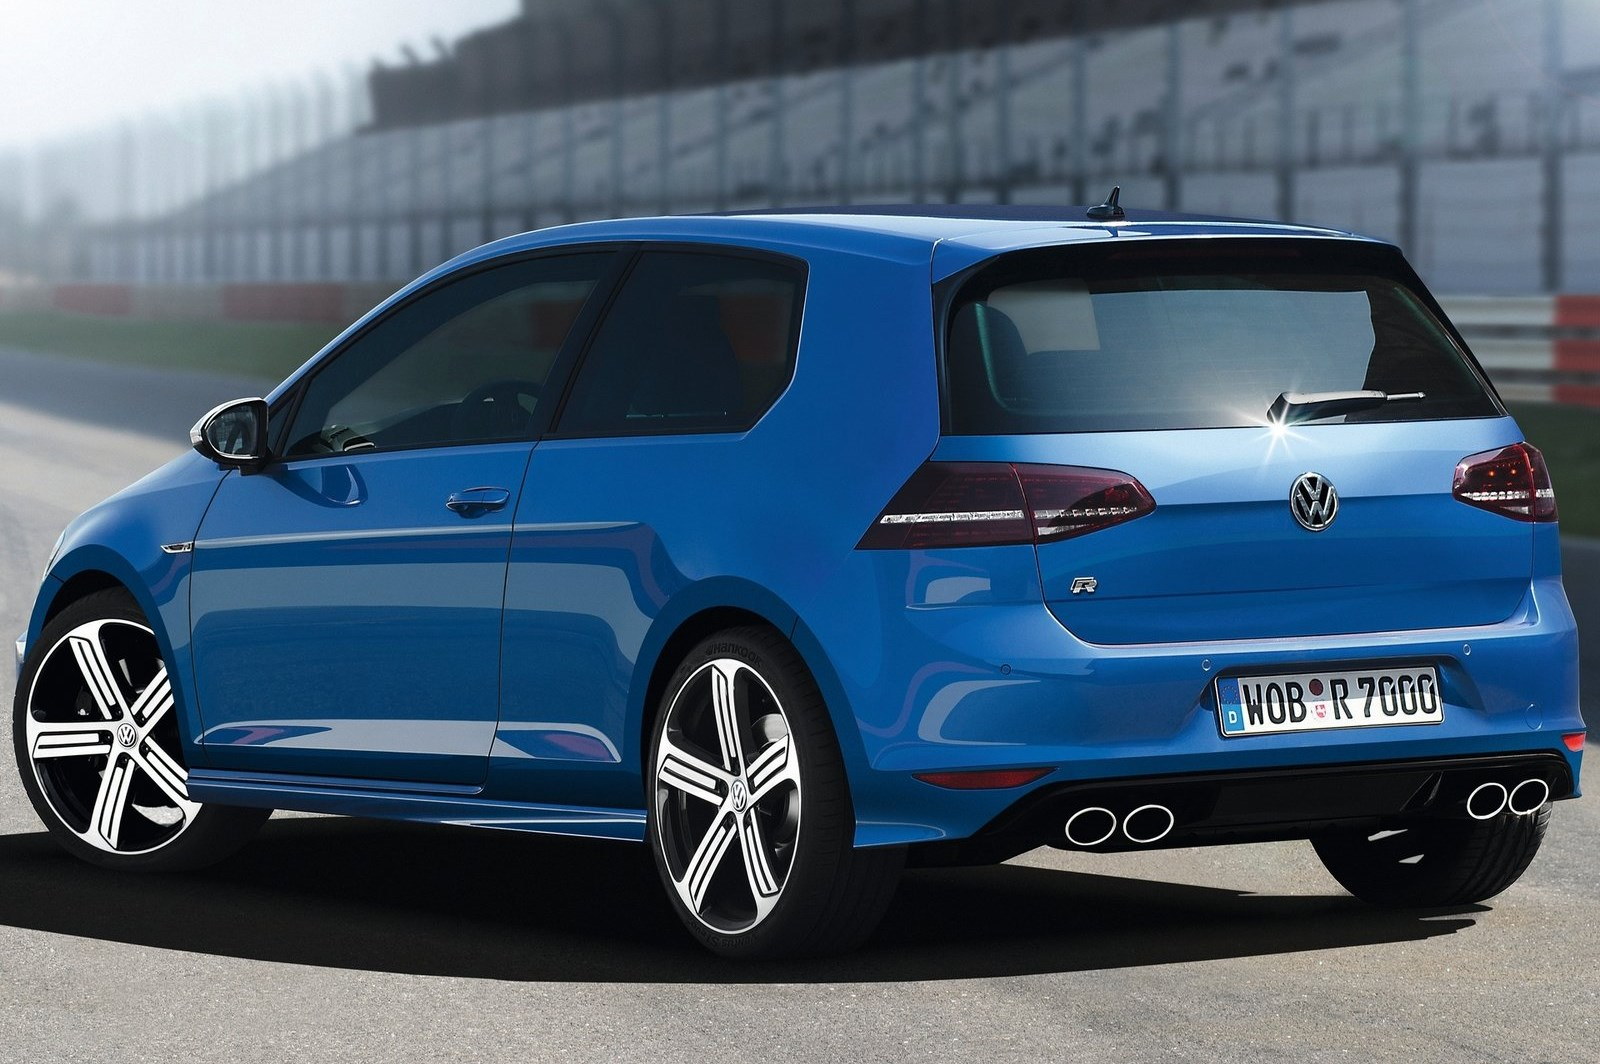 You Can Now Order Vw Golf R Variant In also Mk7 Golf R 0005 furthermore Vw Golf Gtd 11 furthermore Volkswagen Golf R Mk7 moreover Modified Mk7 Vw Golf R. on golf mk7 us